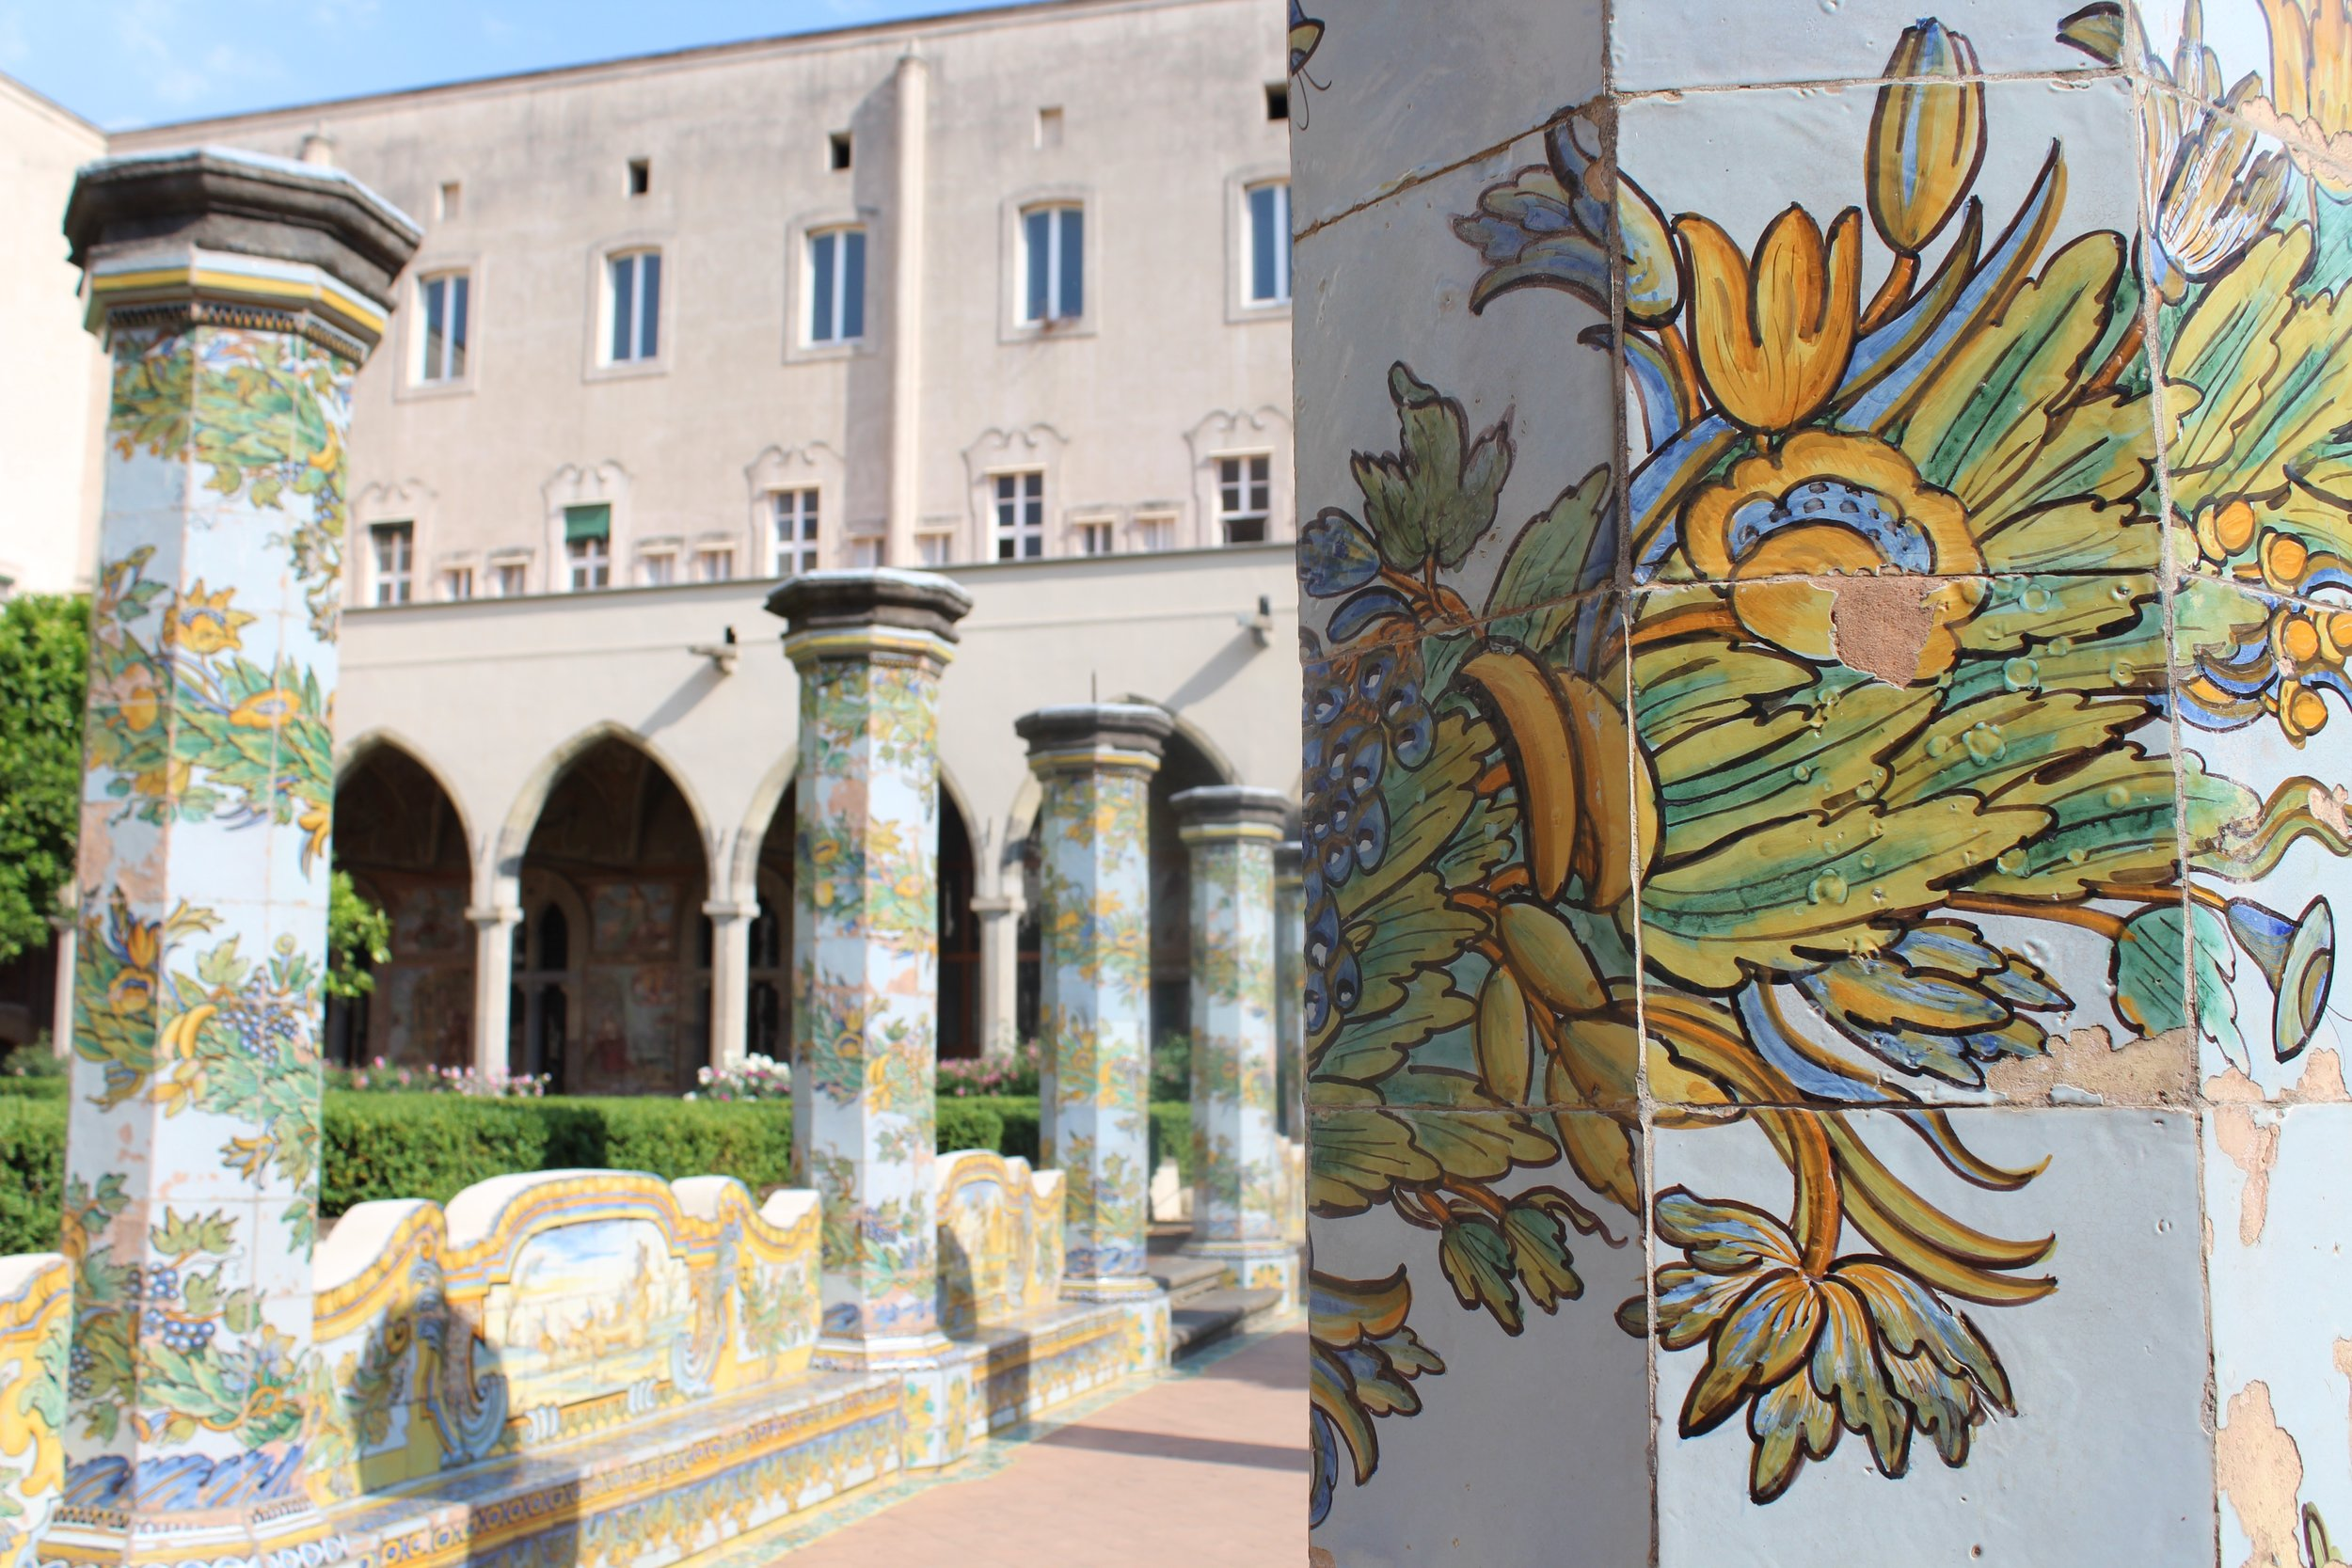 The majolica cloister of Santa Chiara